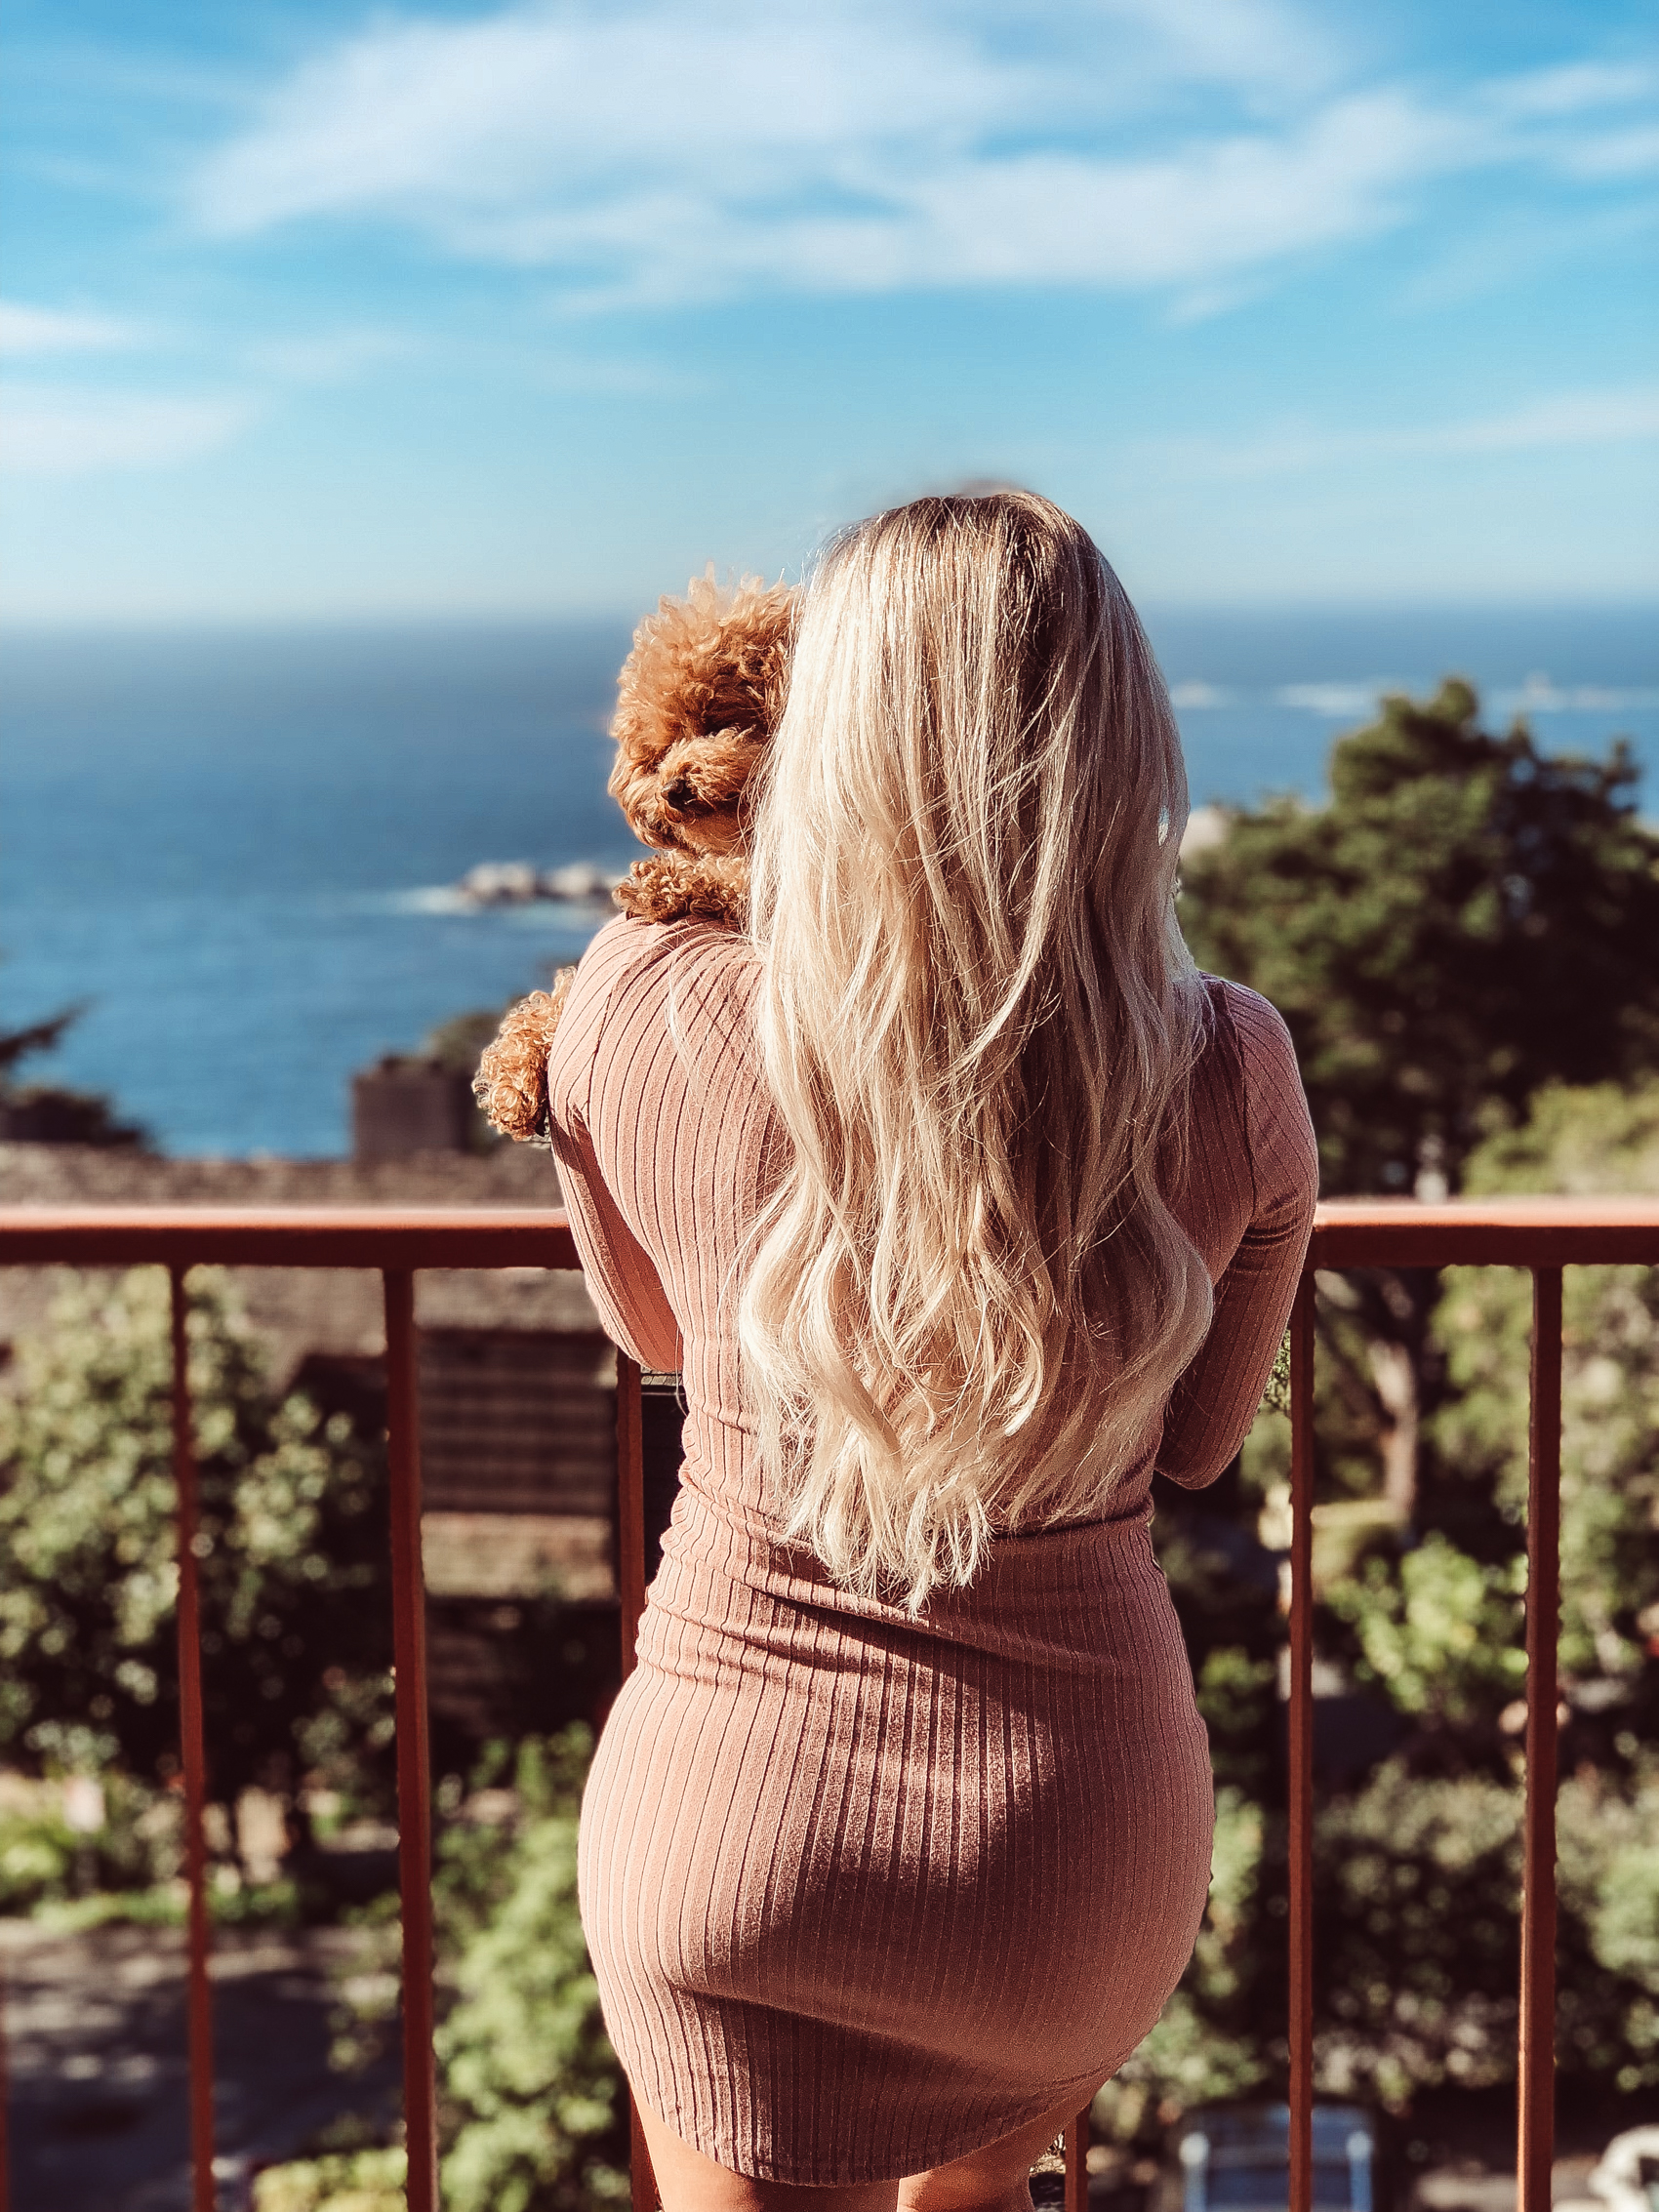 Trip To Carmel By The Sea | Travel | Blondie in the City by Hayley Larue